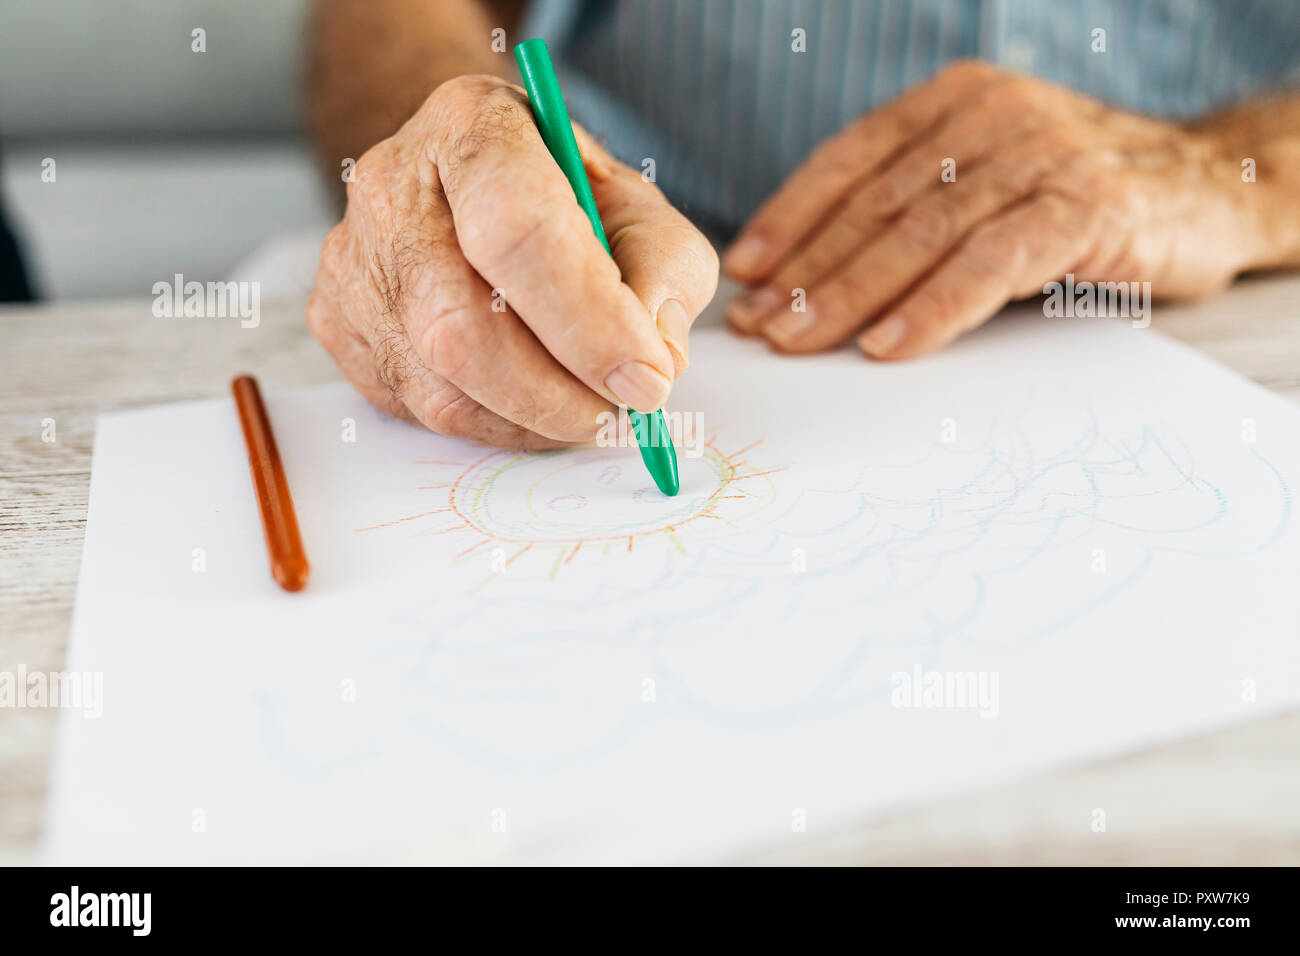 Senior man's hand drawing with green pencil, close-up - Stock Image